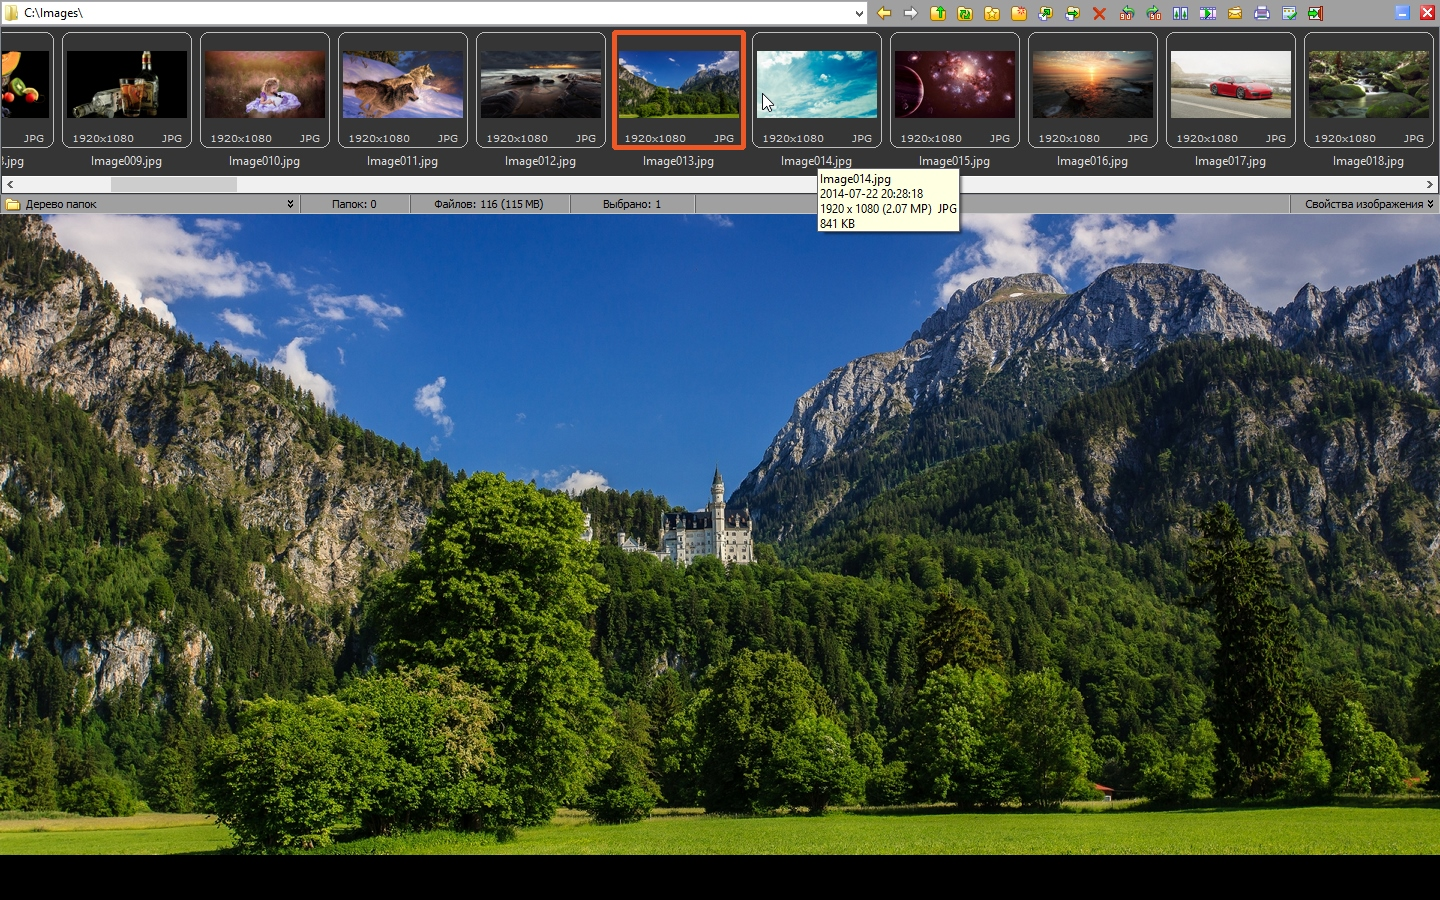 FastStone Image Viewer 6.1 RePack (& Portable) by KpoJIuK (16.02.2017) MULTi / Русский